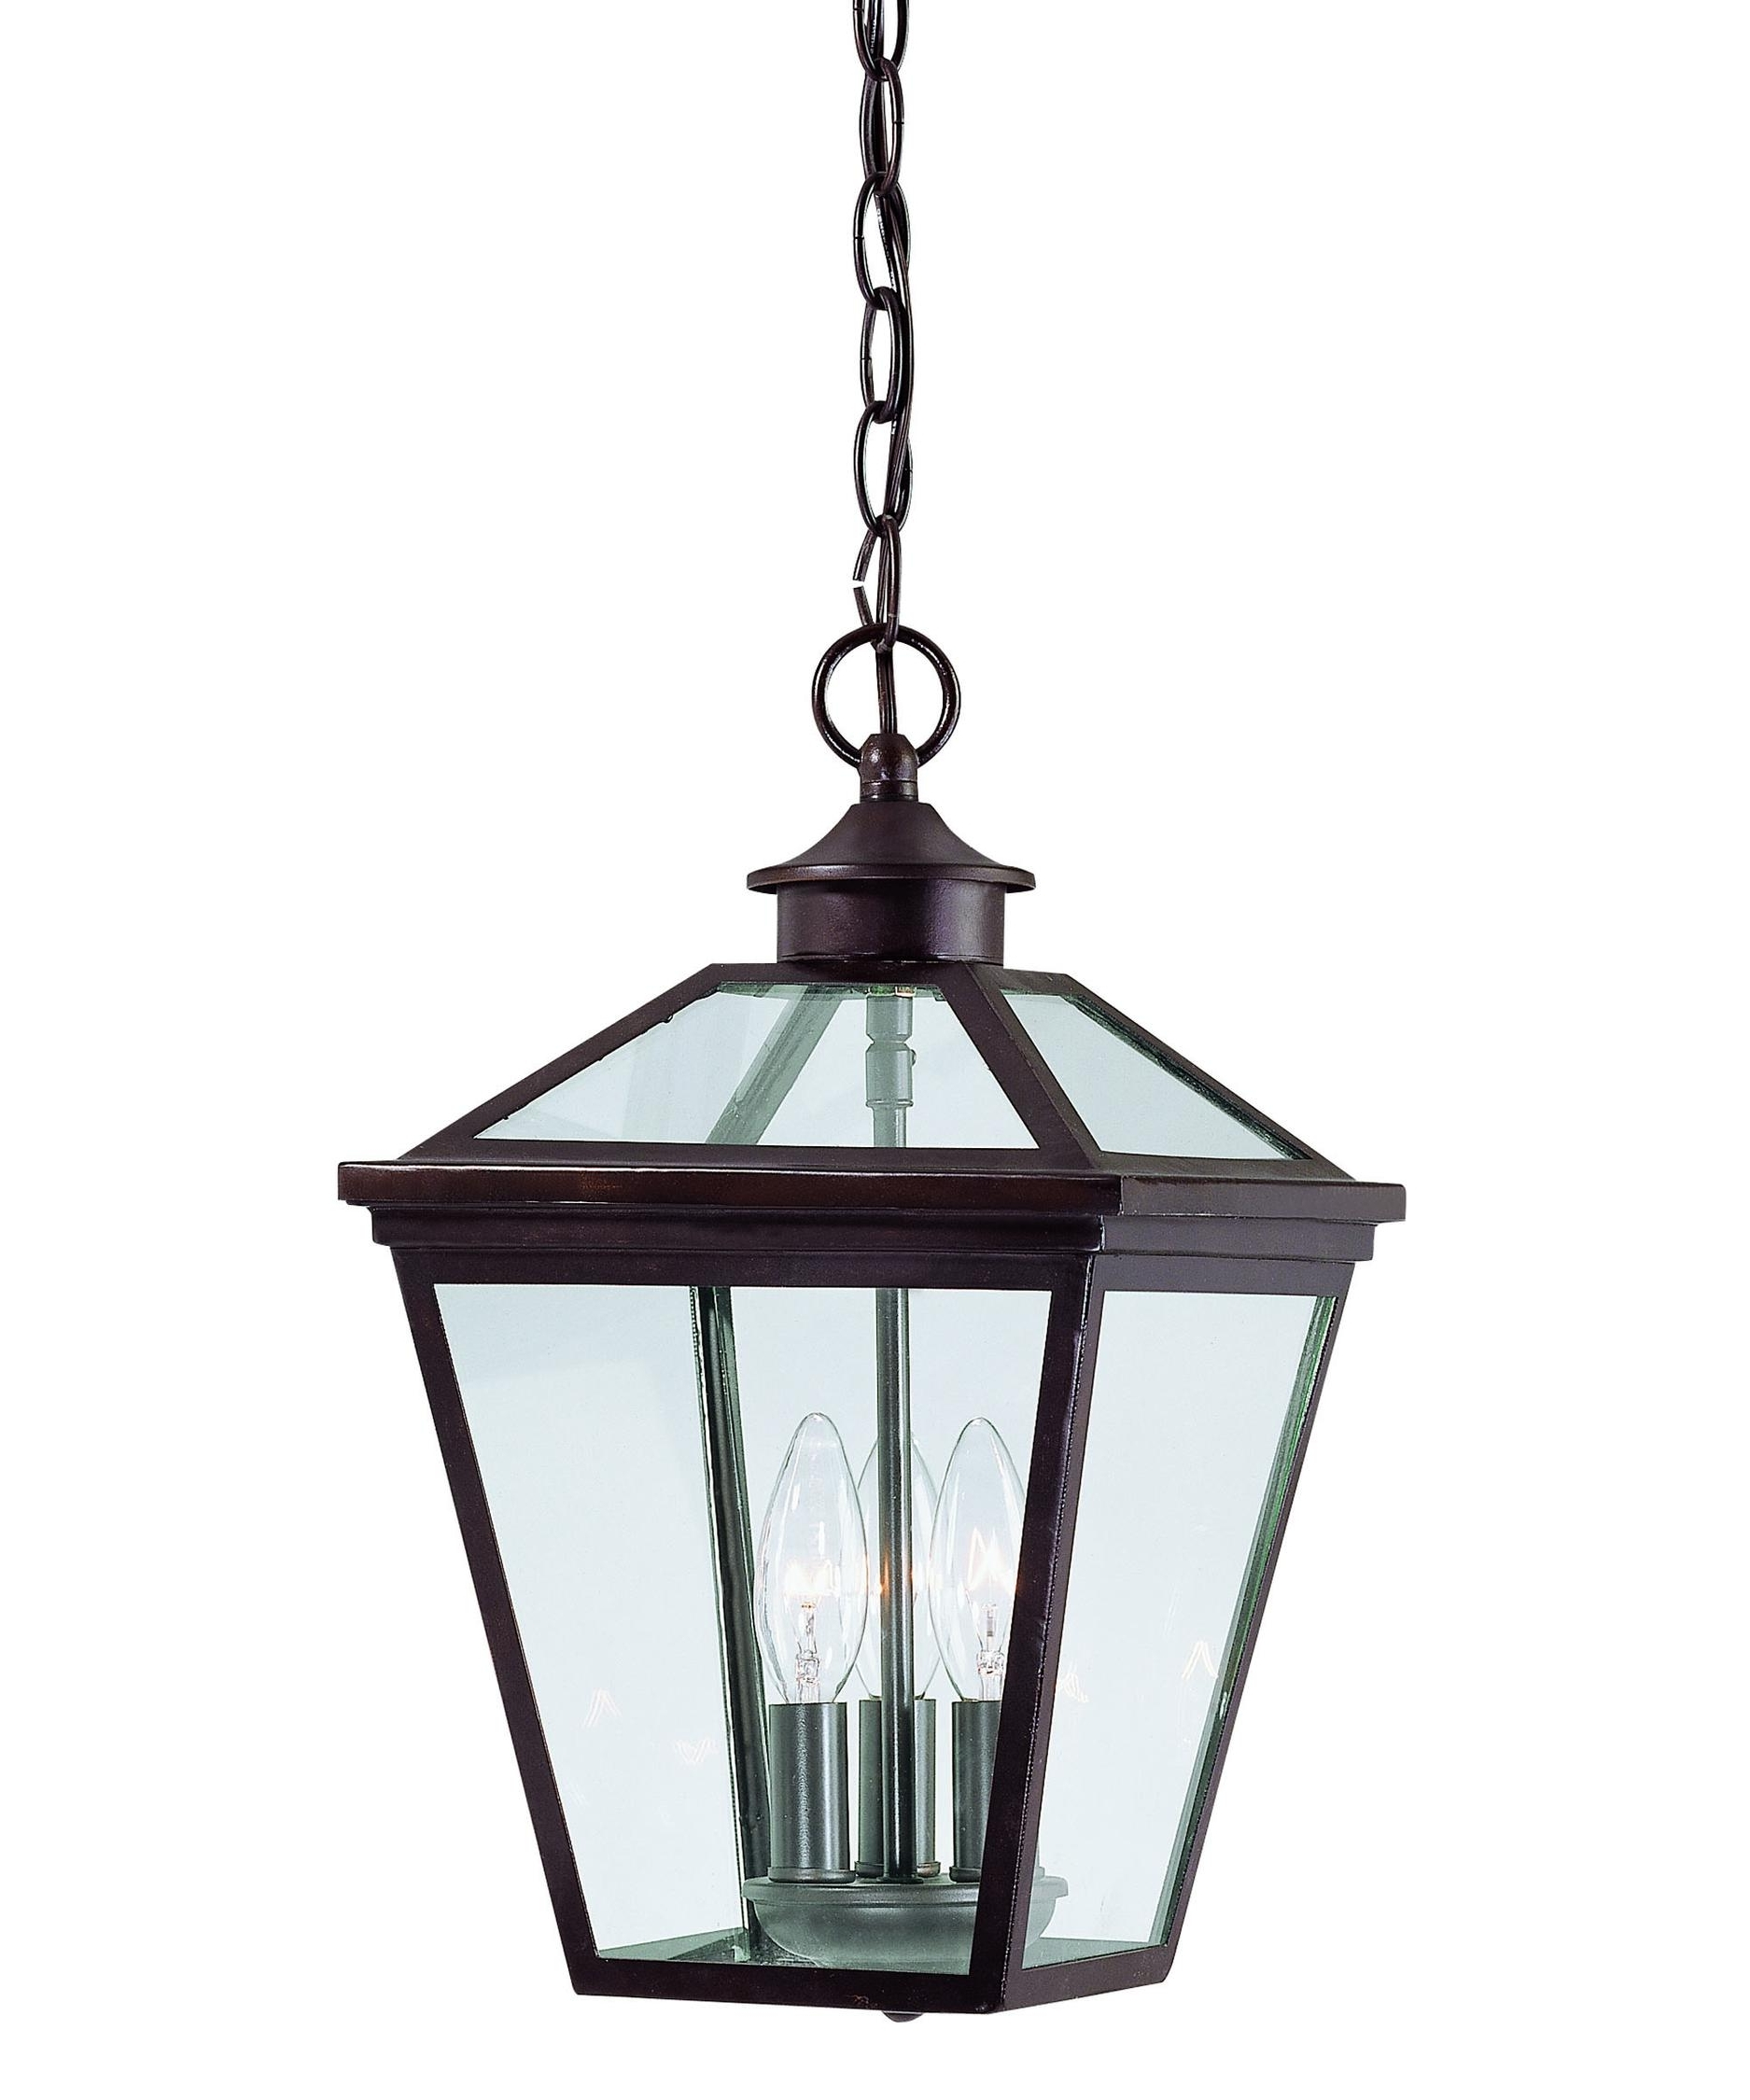 Outdoor Hanging Lantern Lights Throughout Newest Savoy House 5 146 13 Ellijay 9 Inch Wide 3 Light Outdoor Hanging (View 14 of 20)